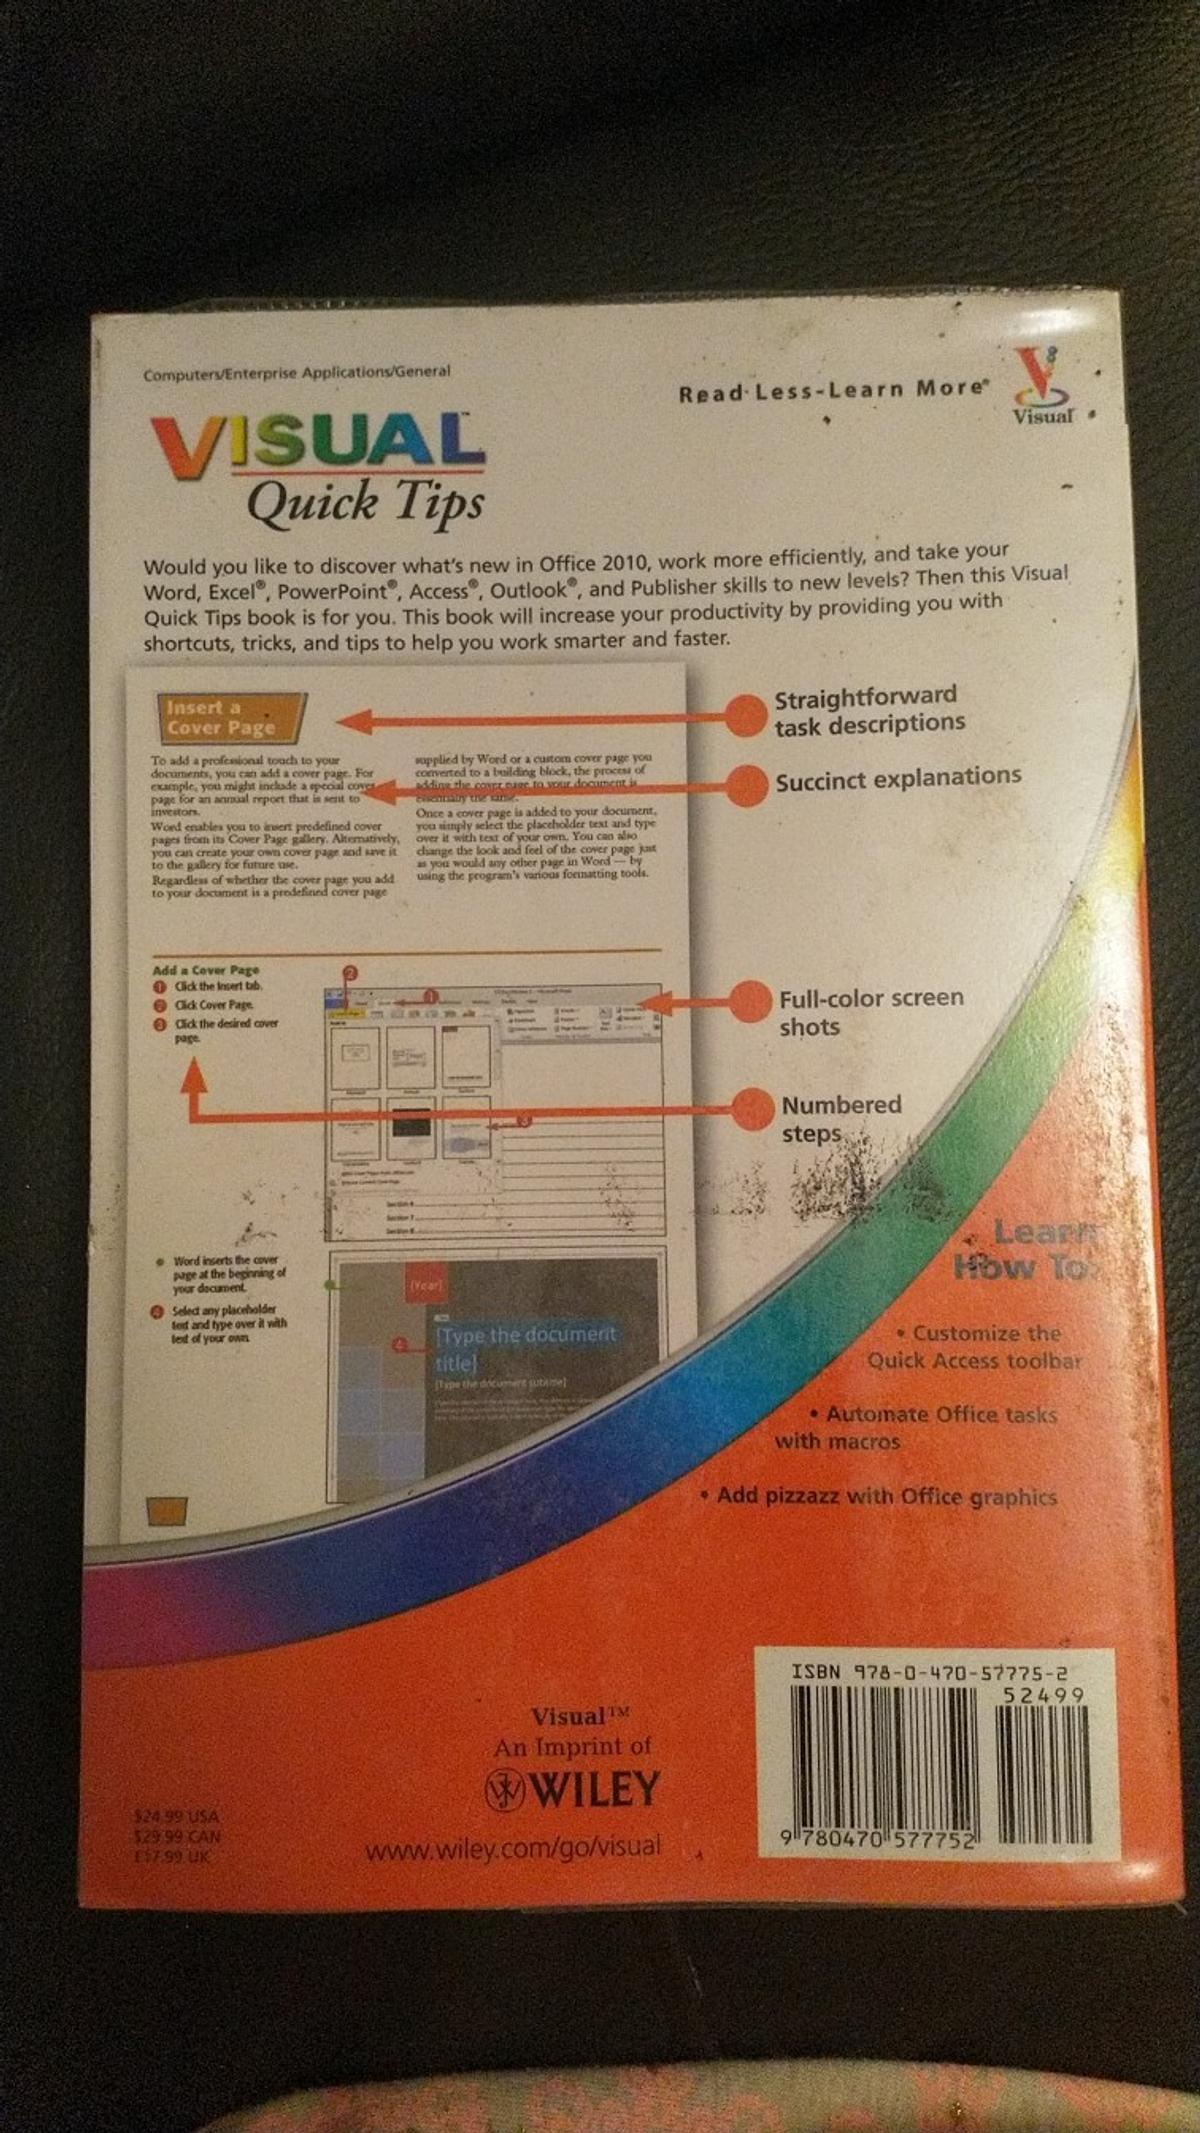 Microsoft Office 2010 Visual Quick Tips